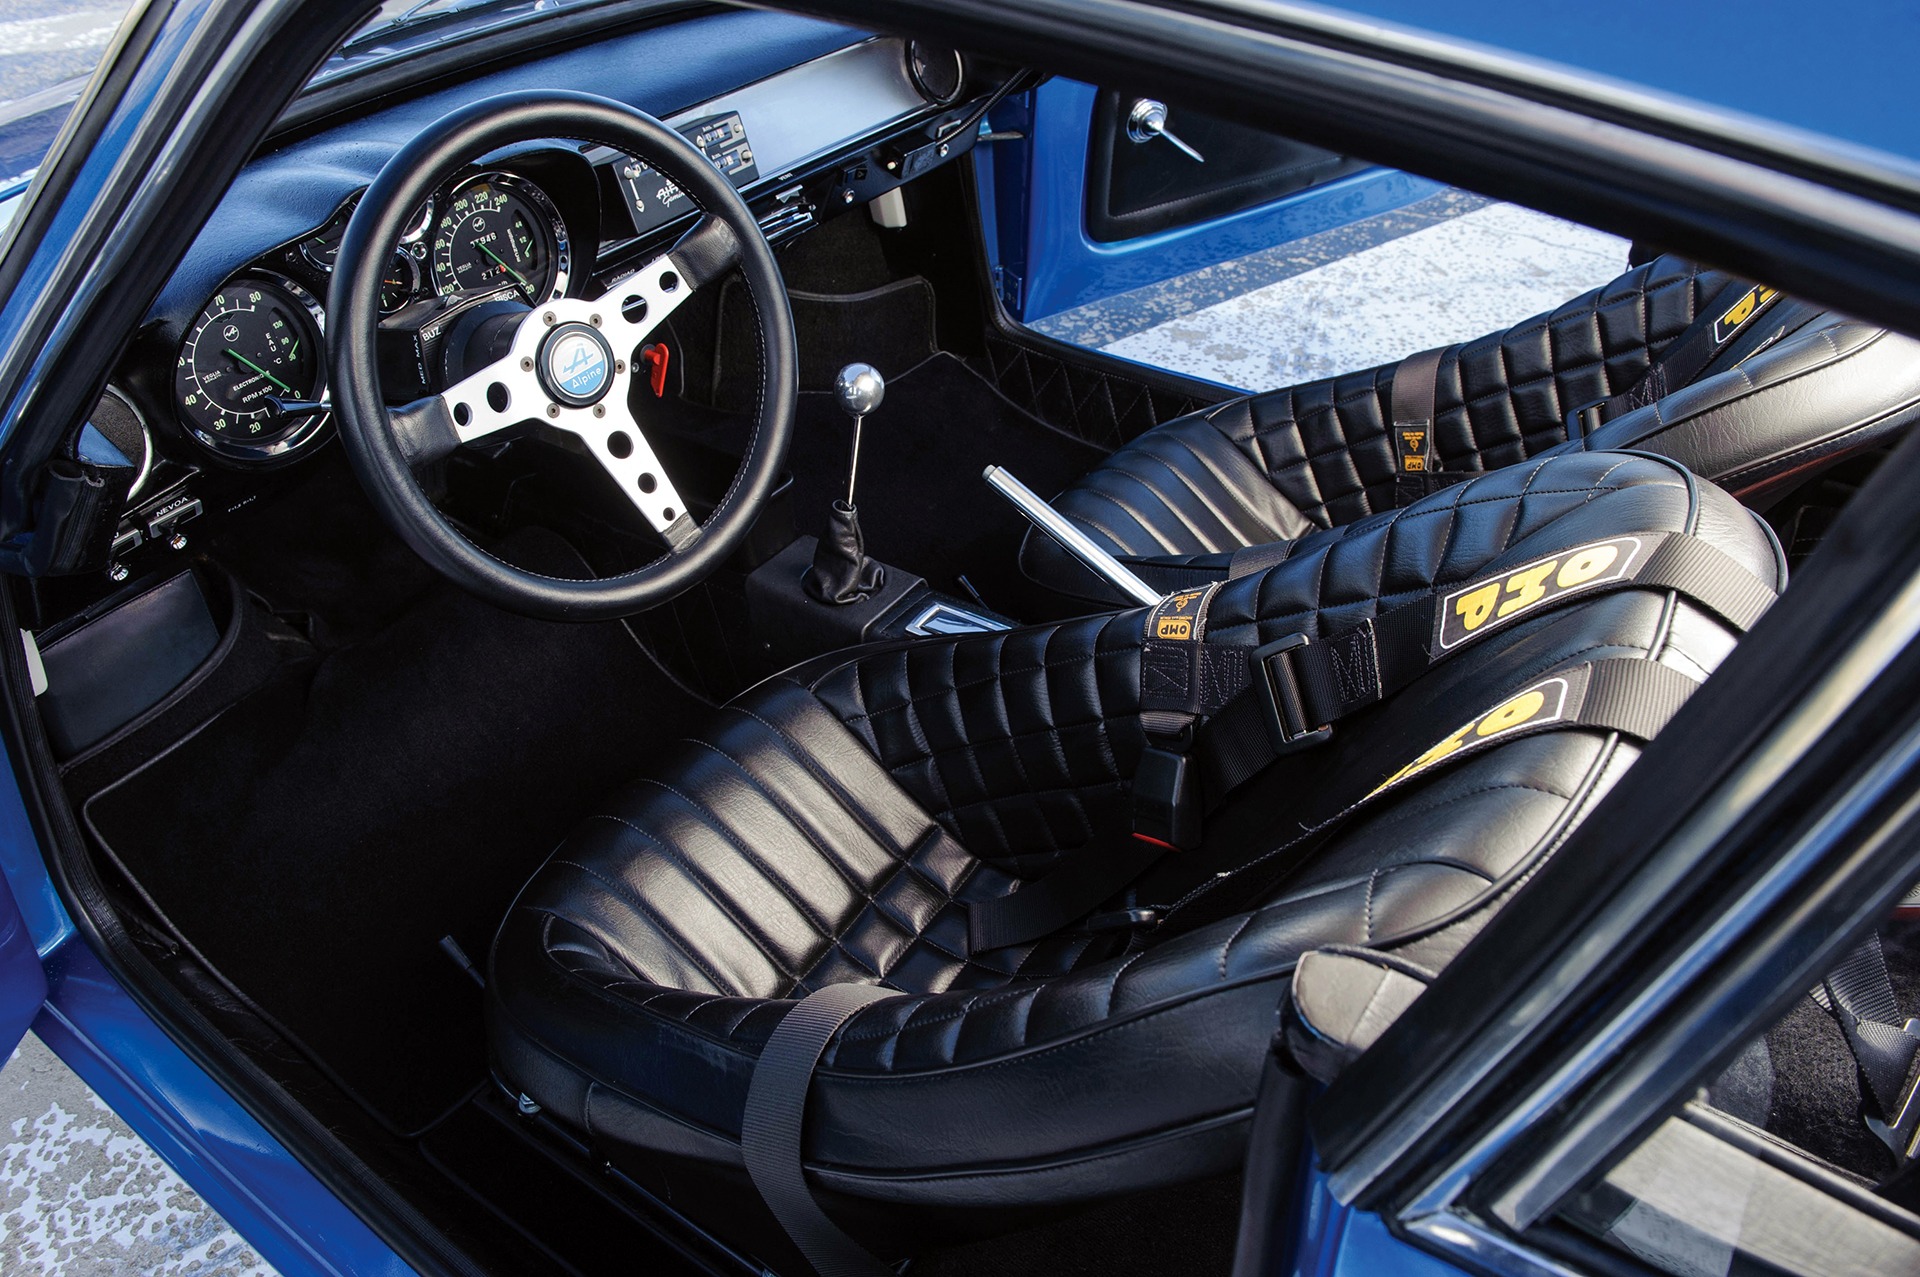 Alpine A110 1600S - intérieur / interior - Photo Tom Wood 2015 Courtesy of RM Auctions